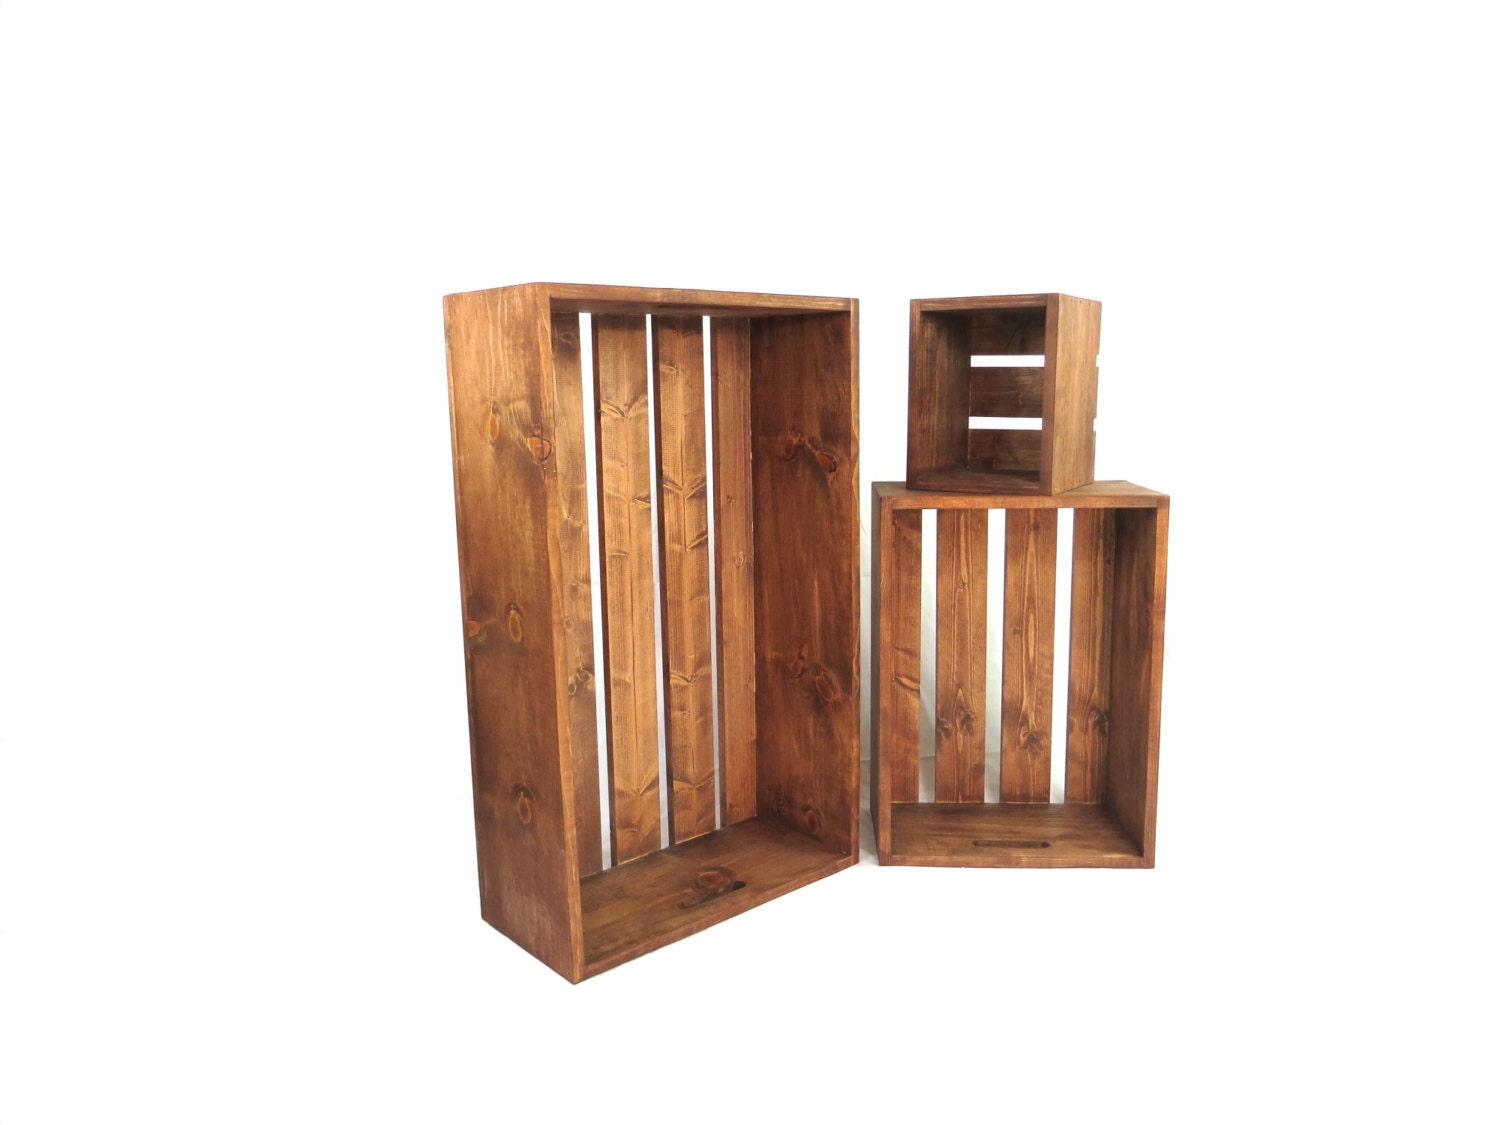 Wooden Crate With Handles Oversized Rustic Wood Crate Set With Built In Handles 3 Large